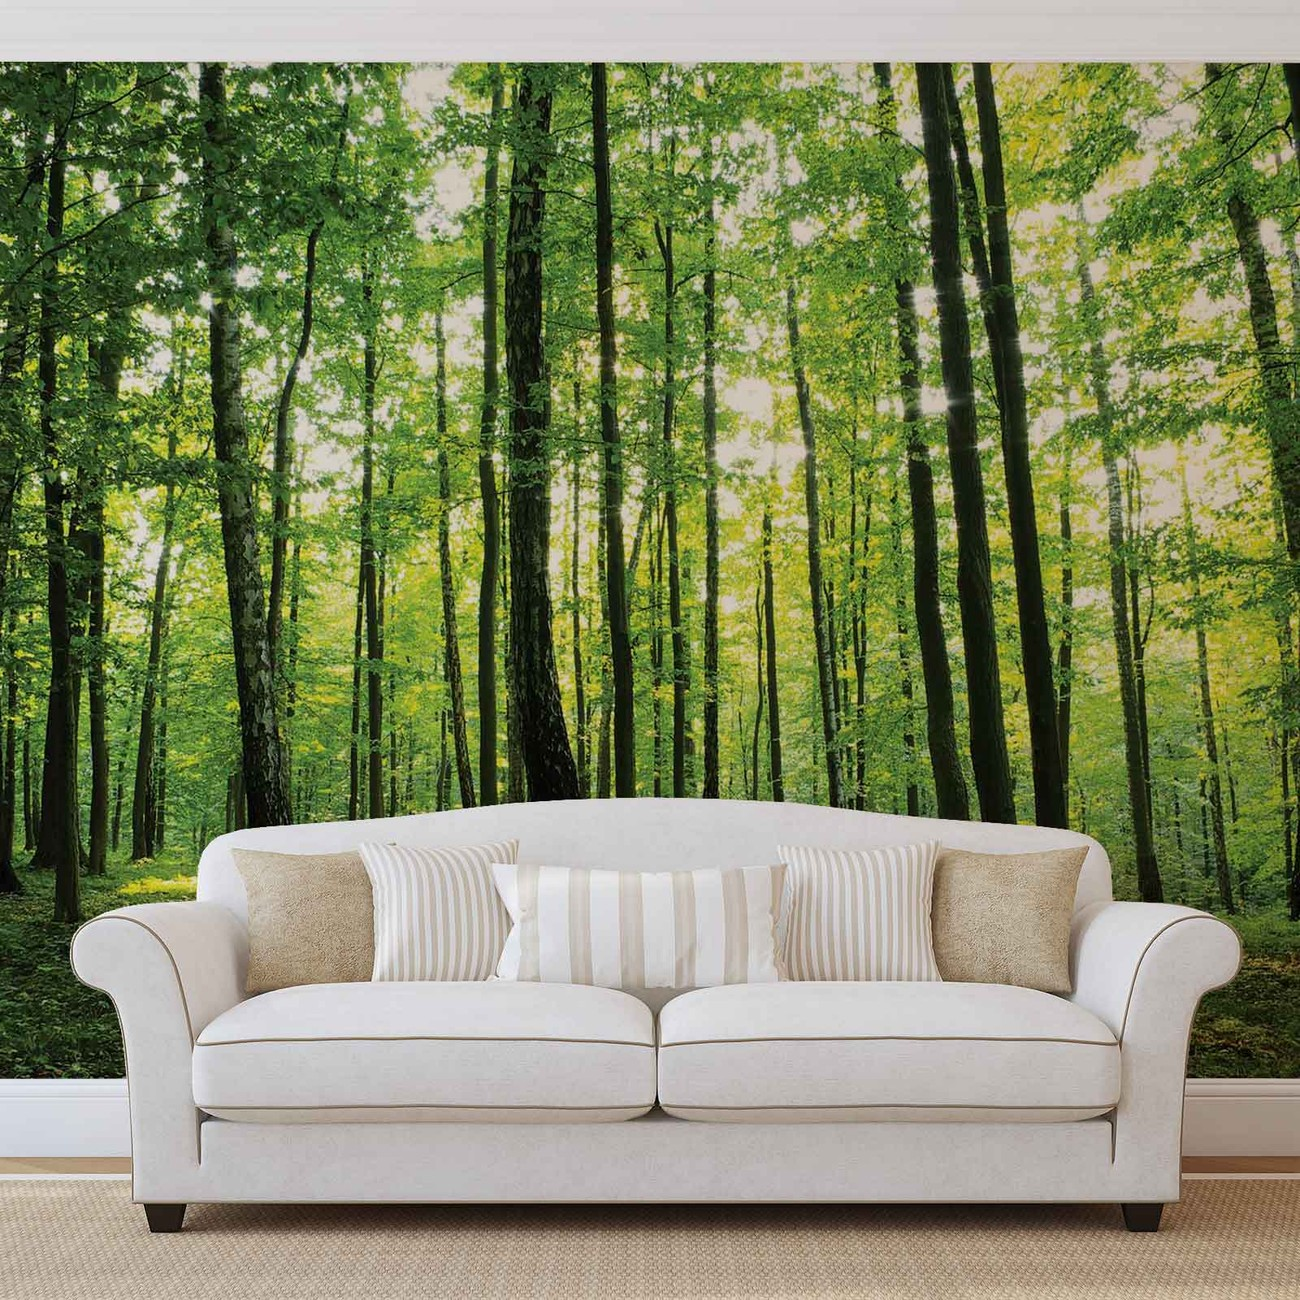 Forest trees green nature wall paper mural buy at europosters forest trees green nature wallpaper mural facebook google pinterest price from amipublicfo Choice Image